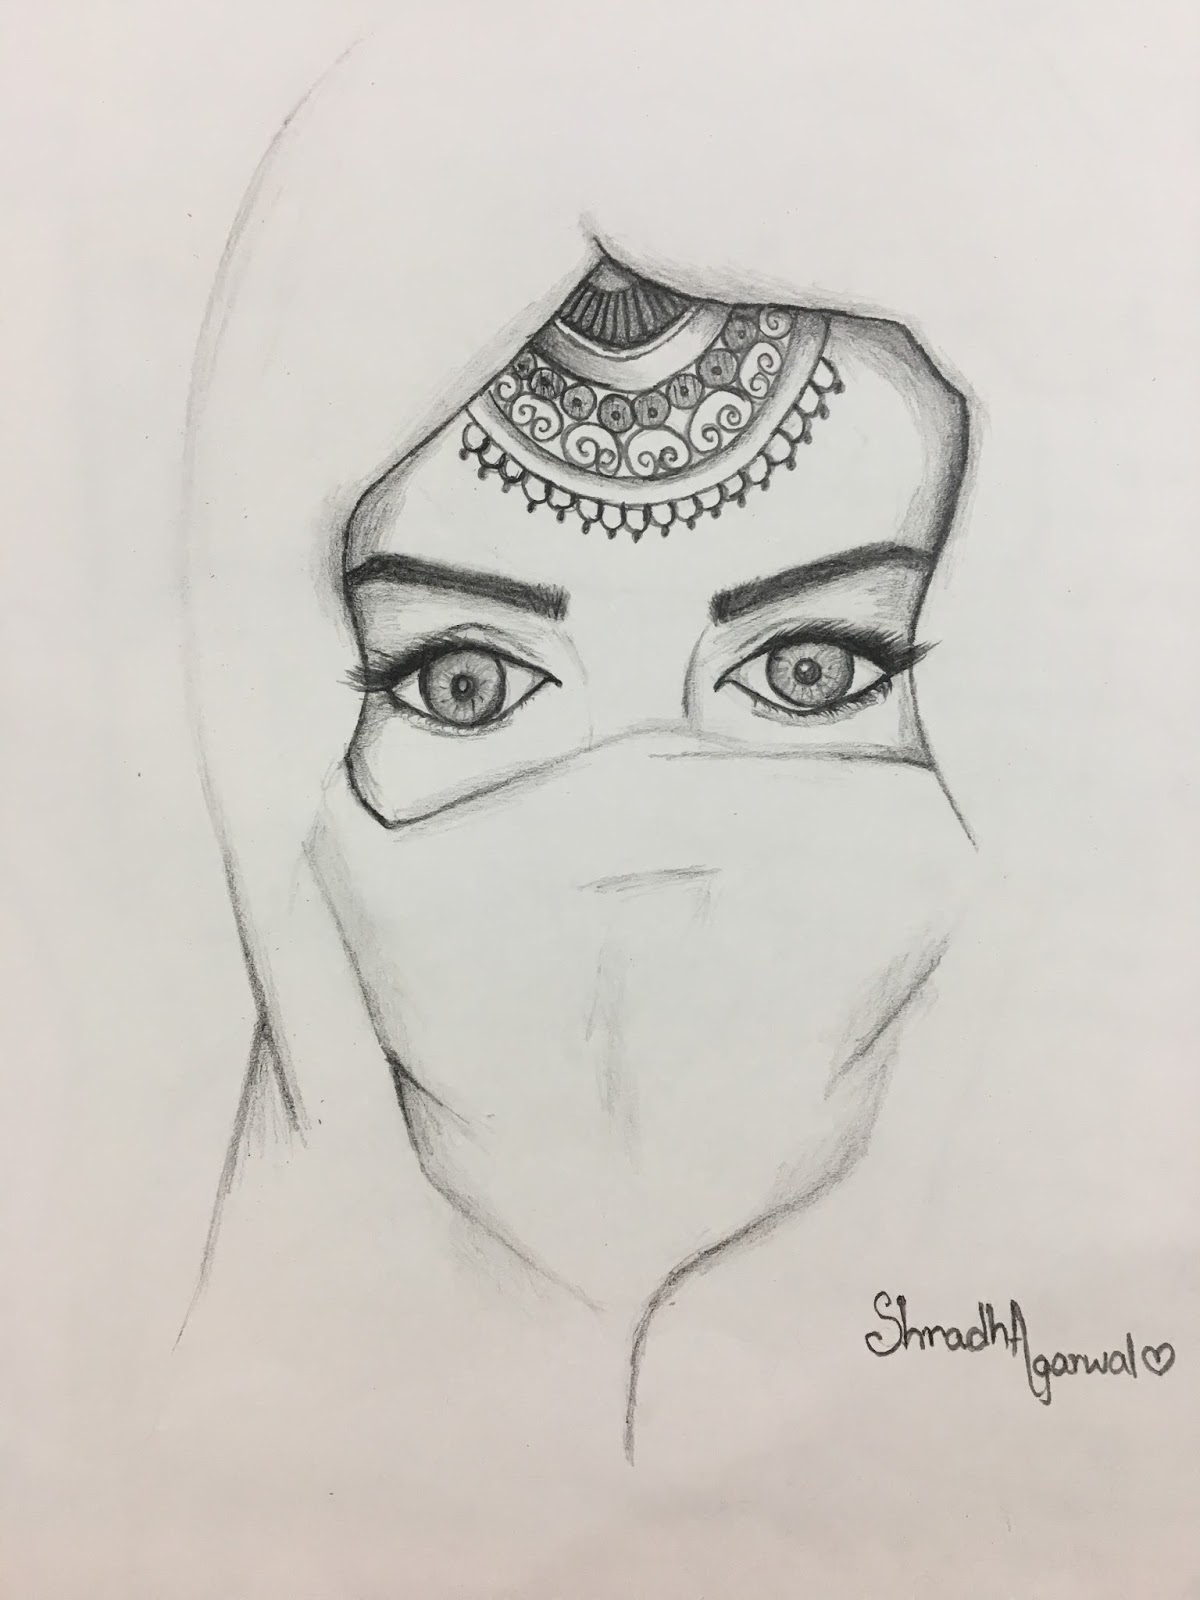 Woman with glittering eyes wearing hijab pencil sketch